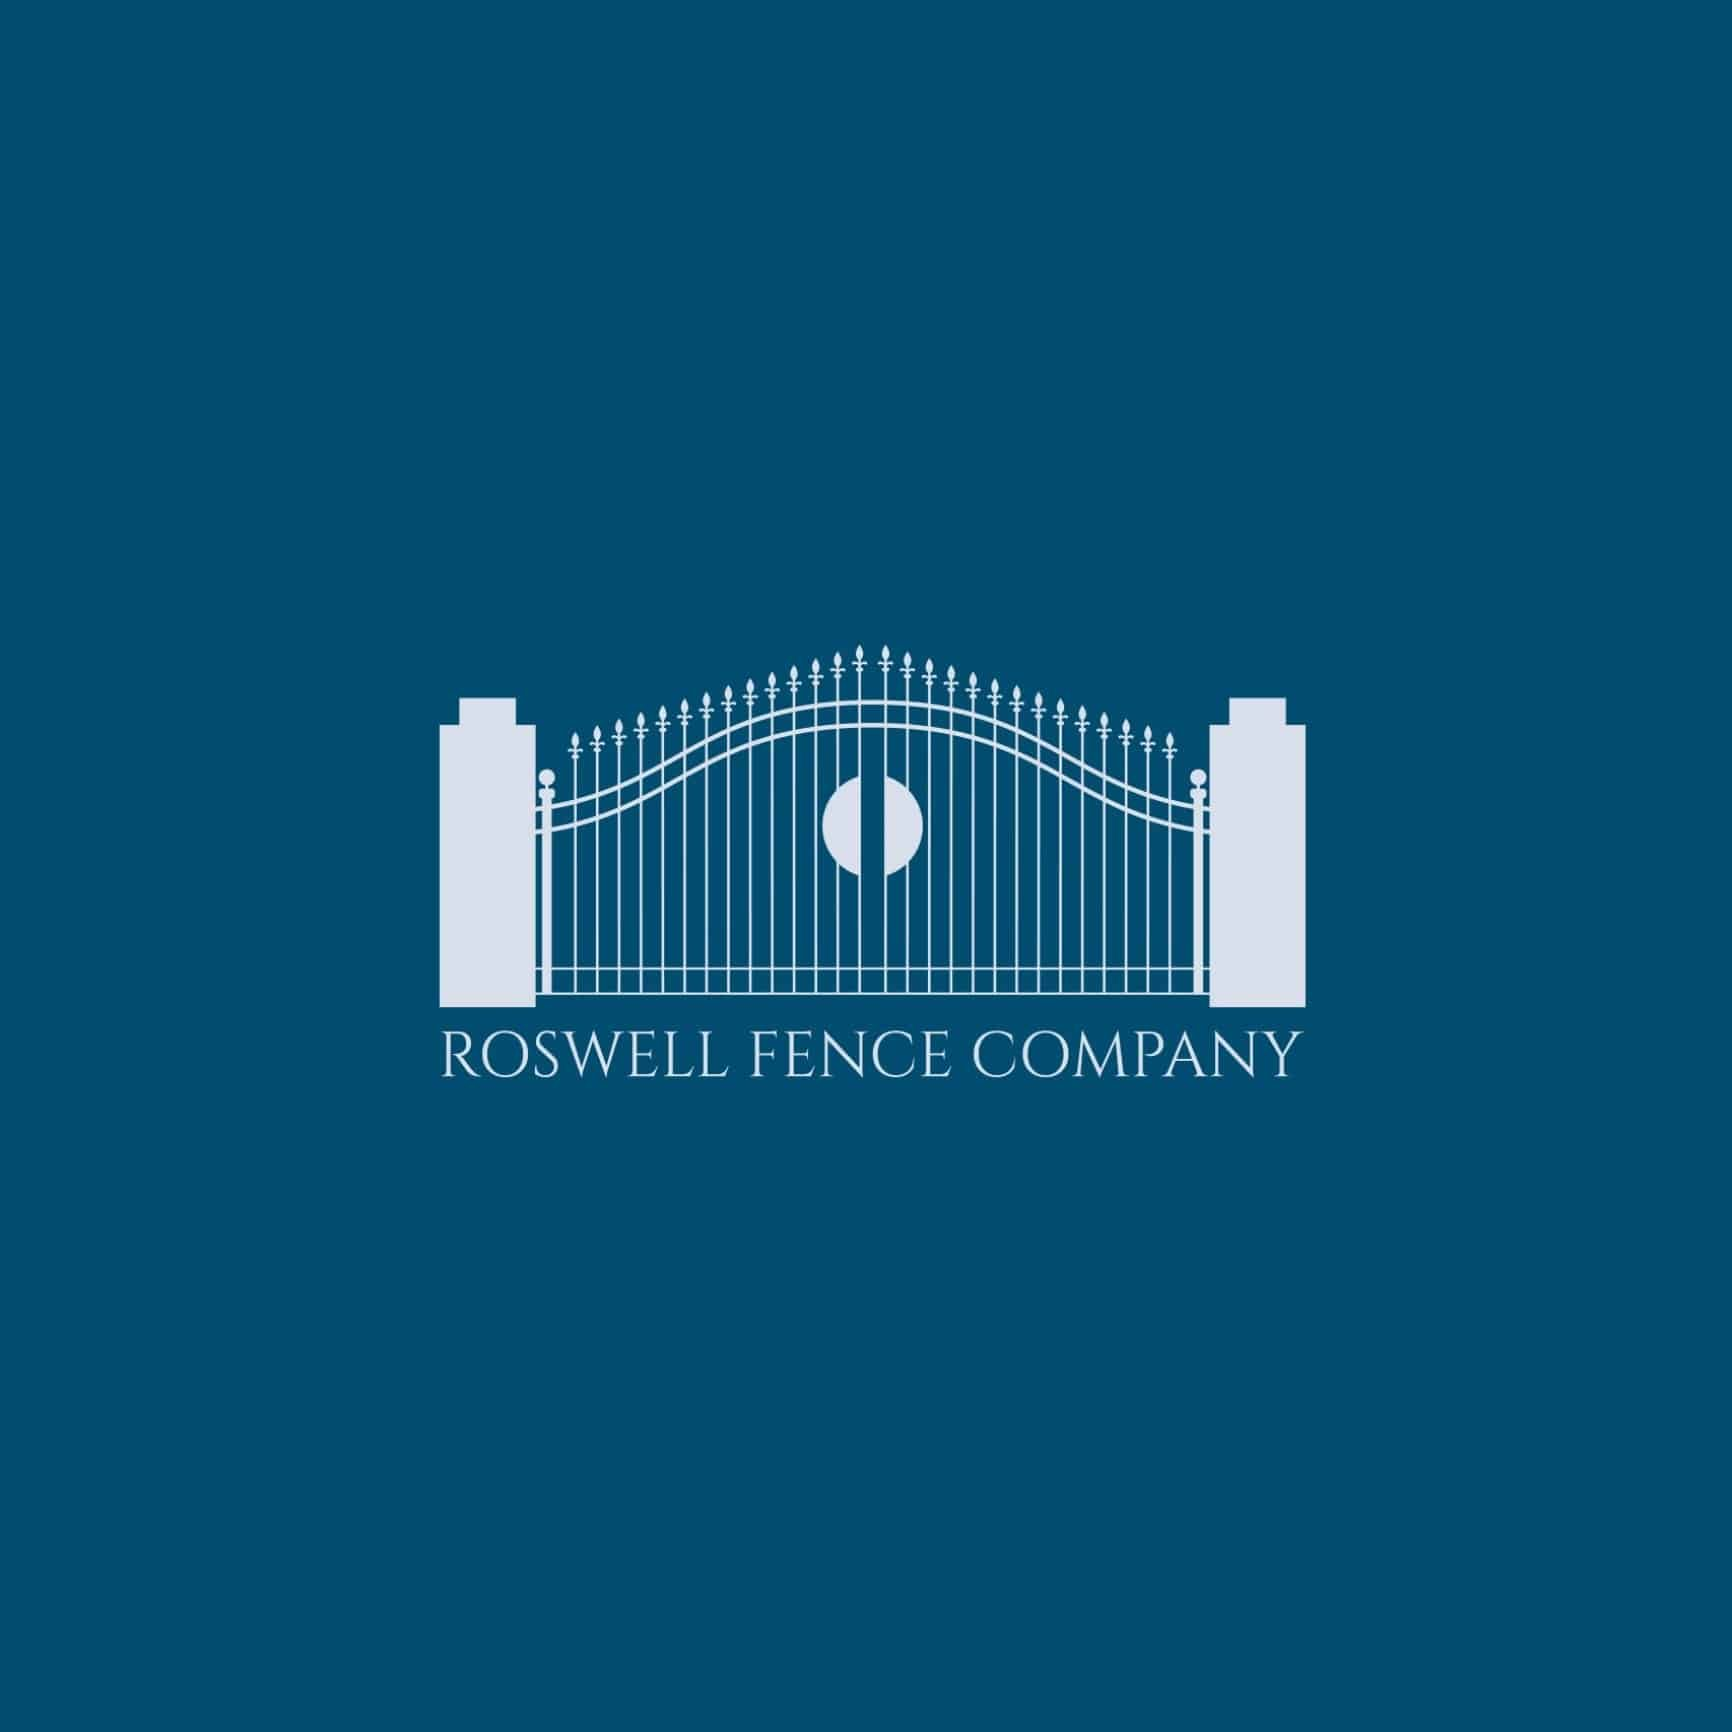 Roswell Fence Company Logo 1732